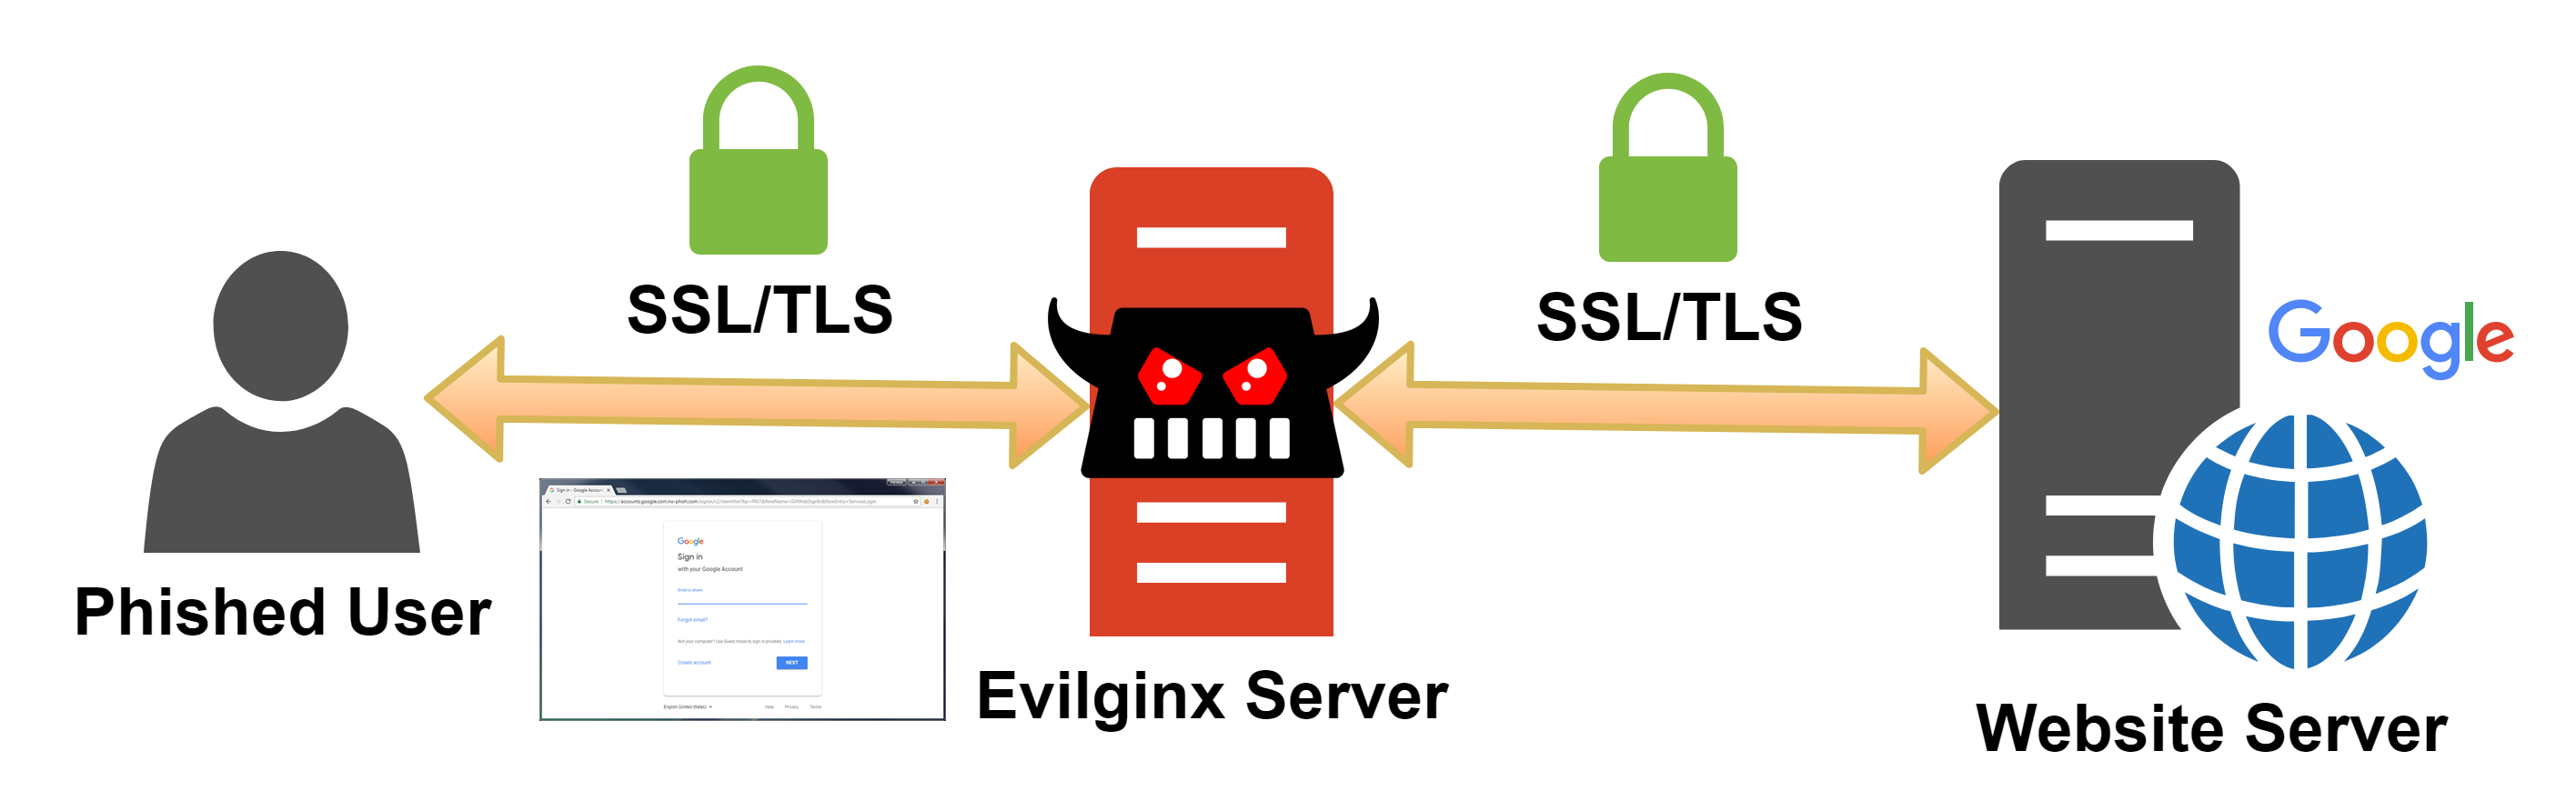 Diagram of Evilginx in the middle proxying the connection